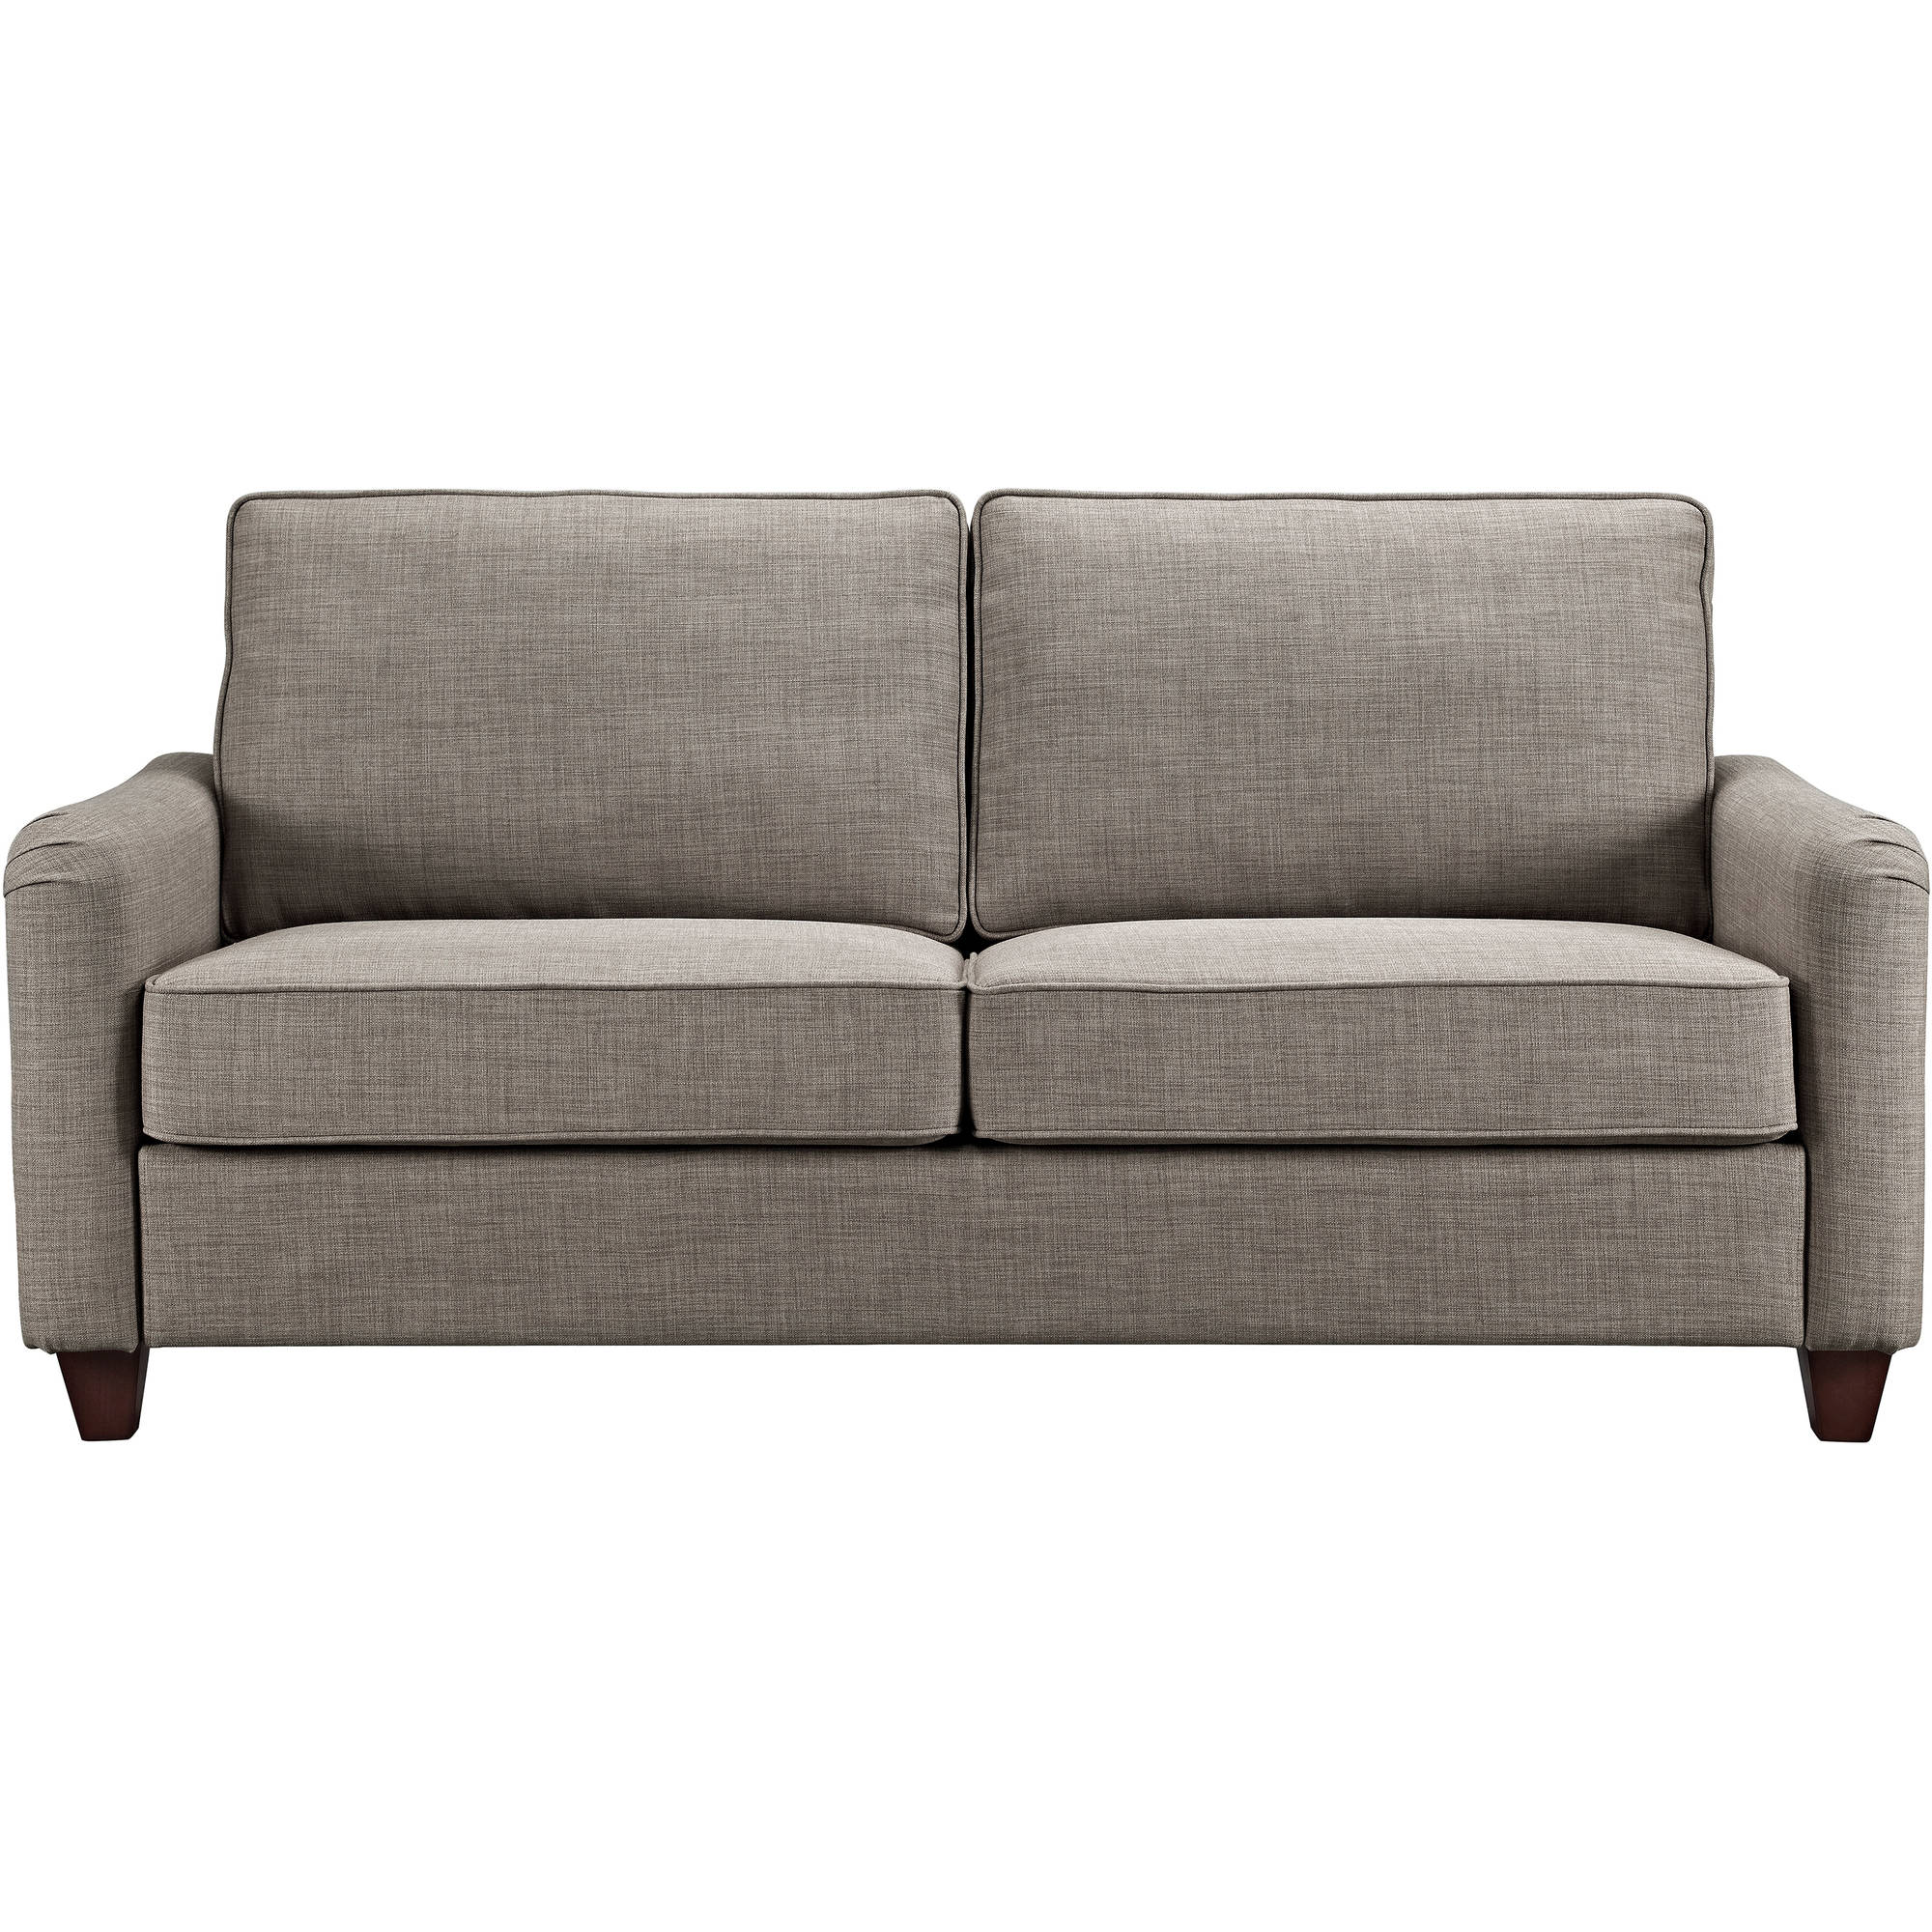 Sofas Couches